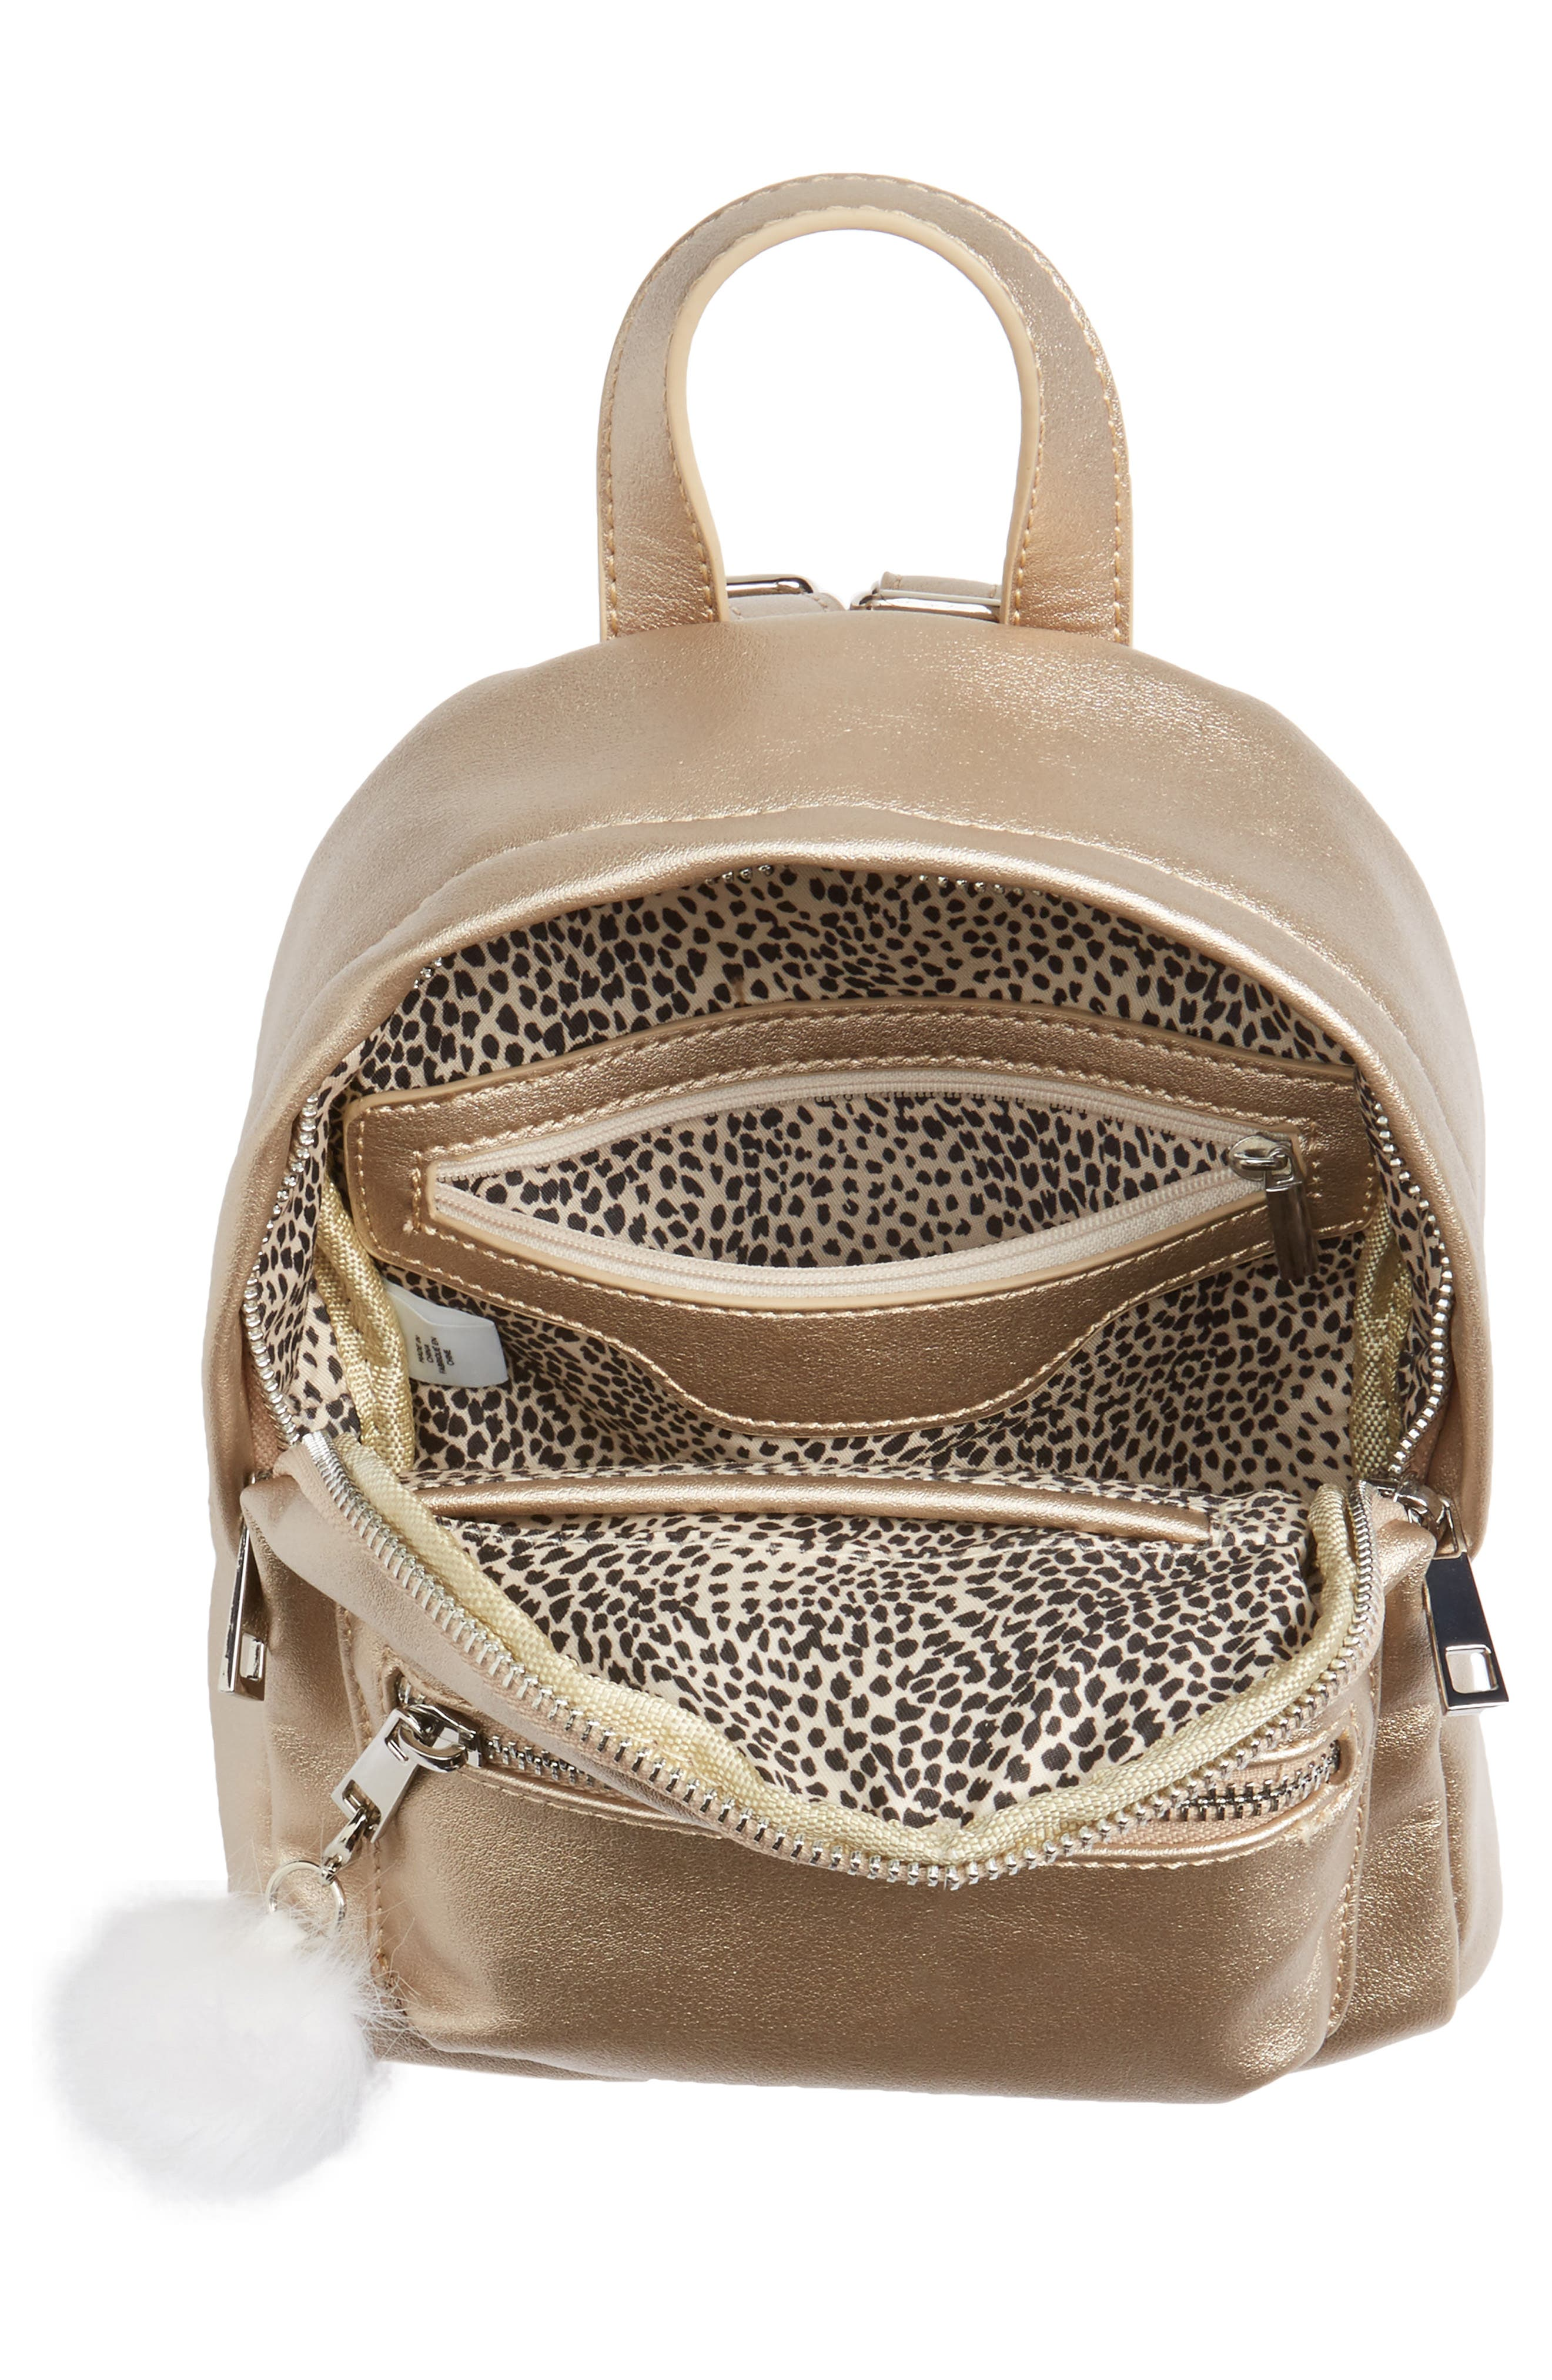 Faux Leather Mini Backpack,                             Alternate thumbnail 6, color,                             Gold/ Silver